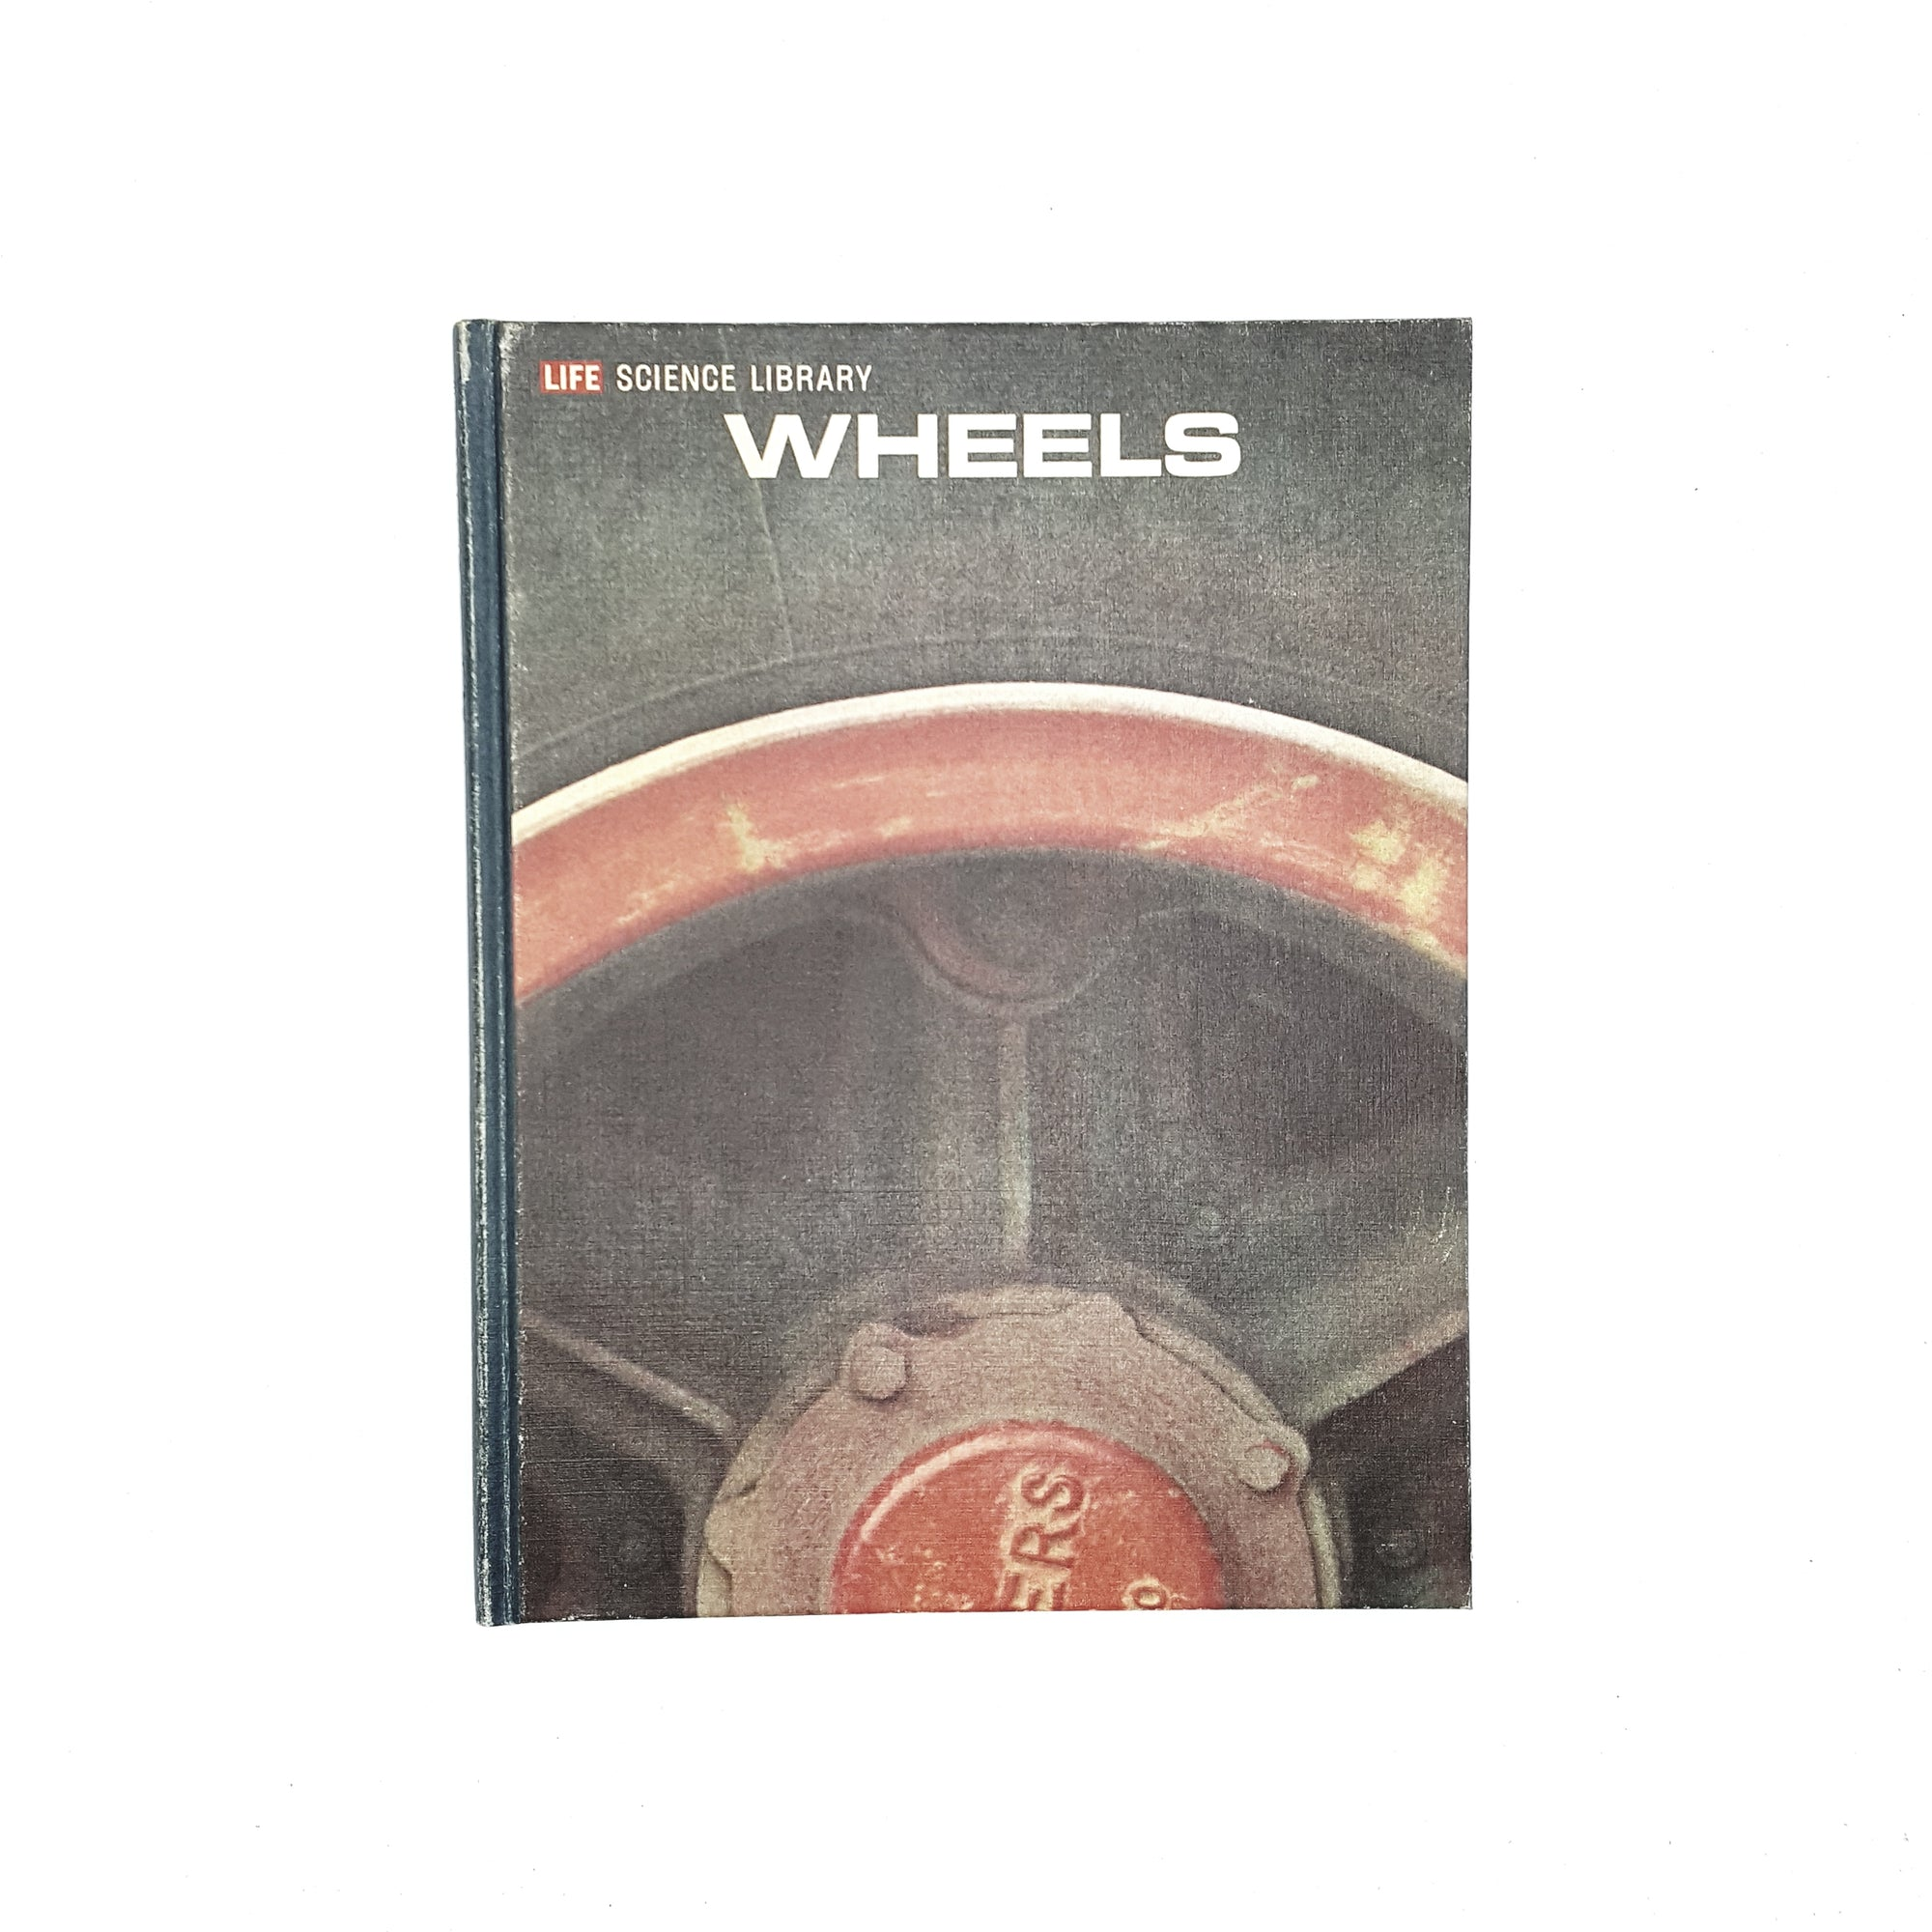 Life Science Library: Wheels 1975